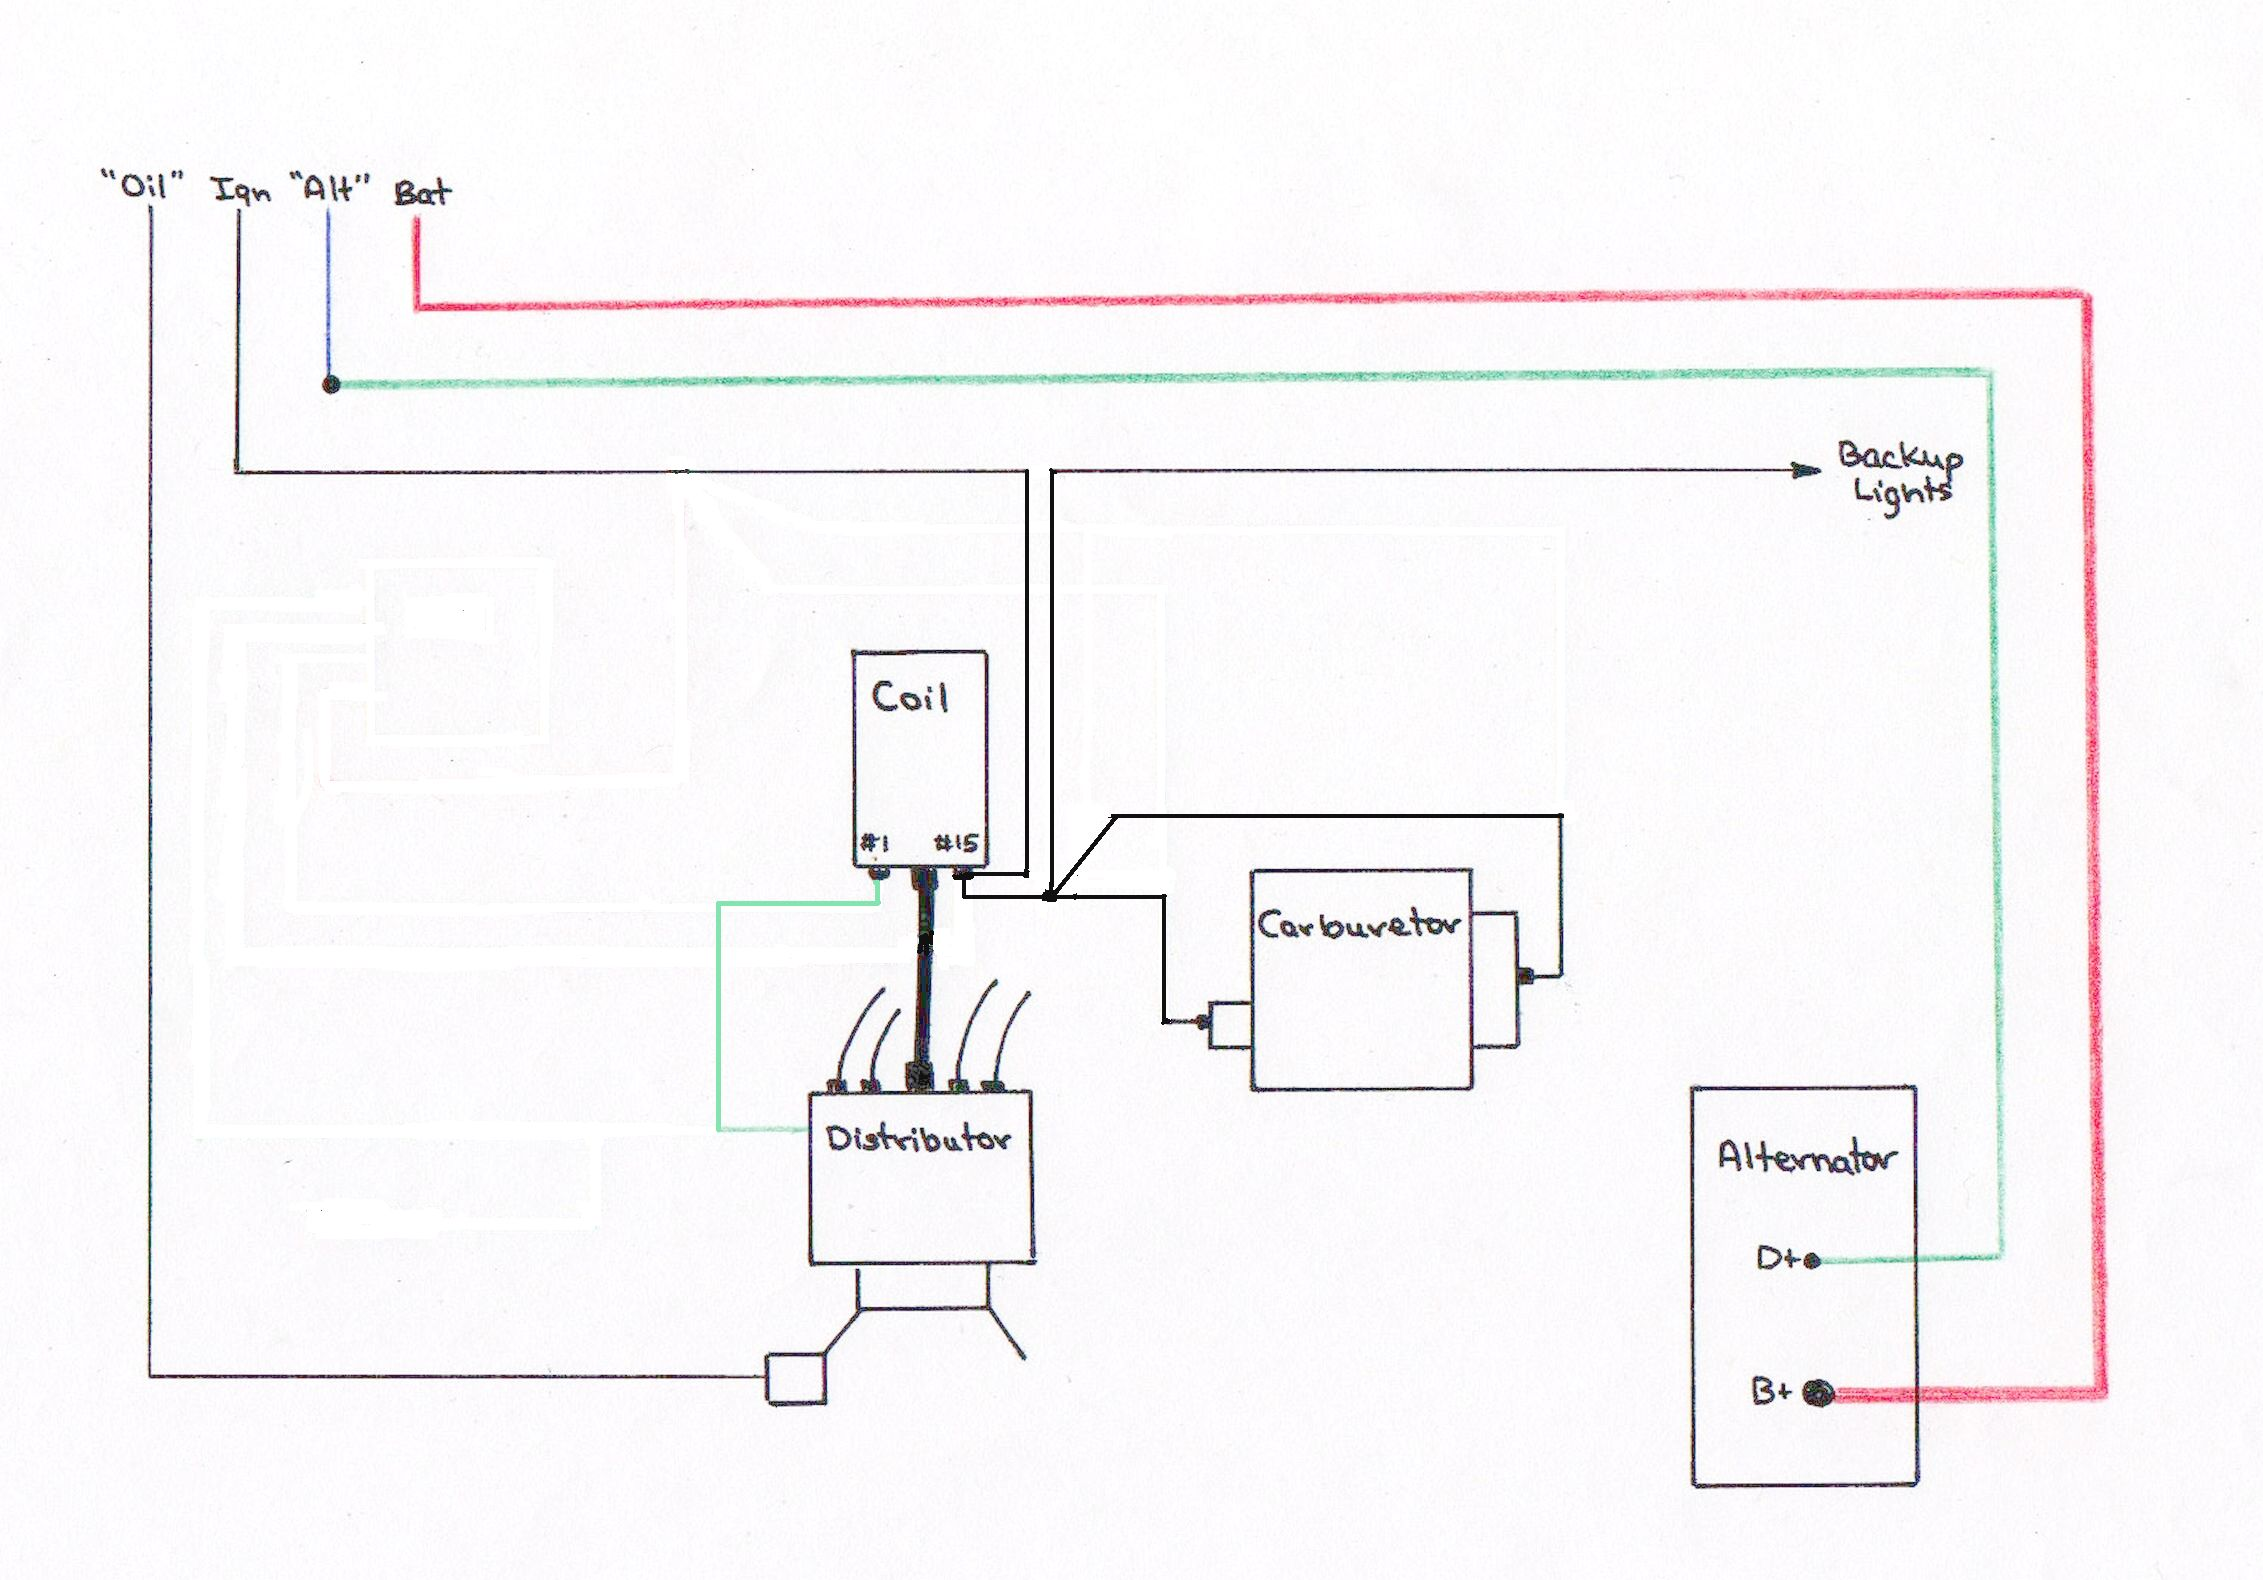 handdrawn_schematic alternator wiring valeo alternator regulator wiring diagram at pacquiaovsvargaslive.co